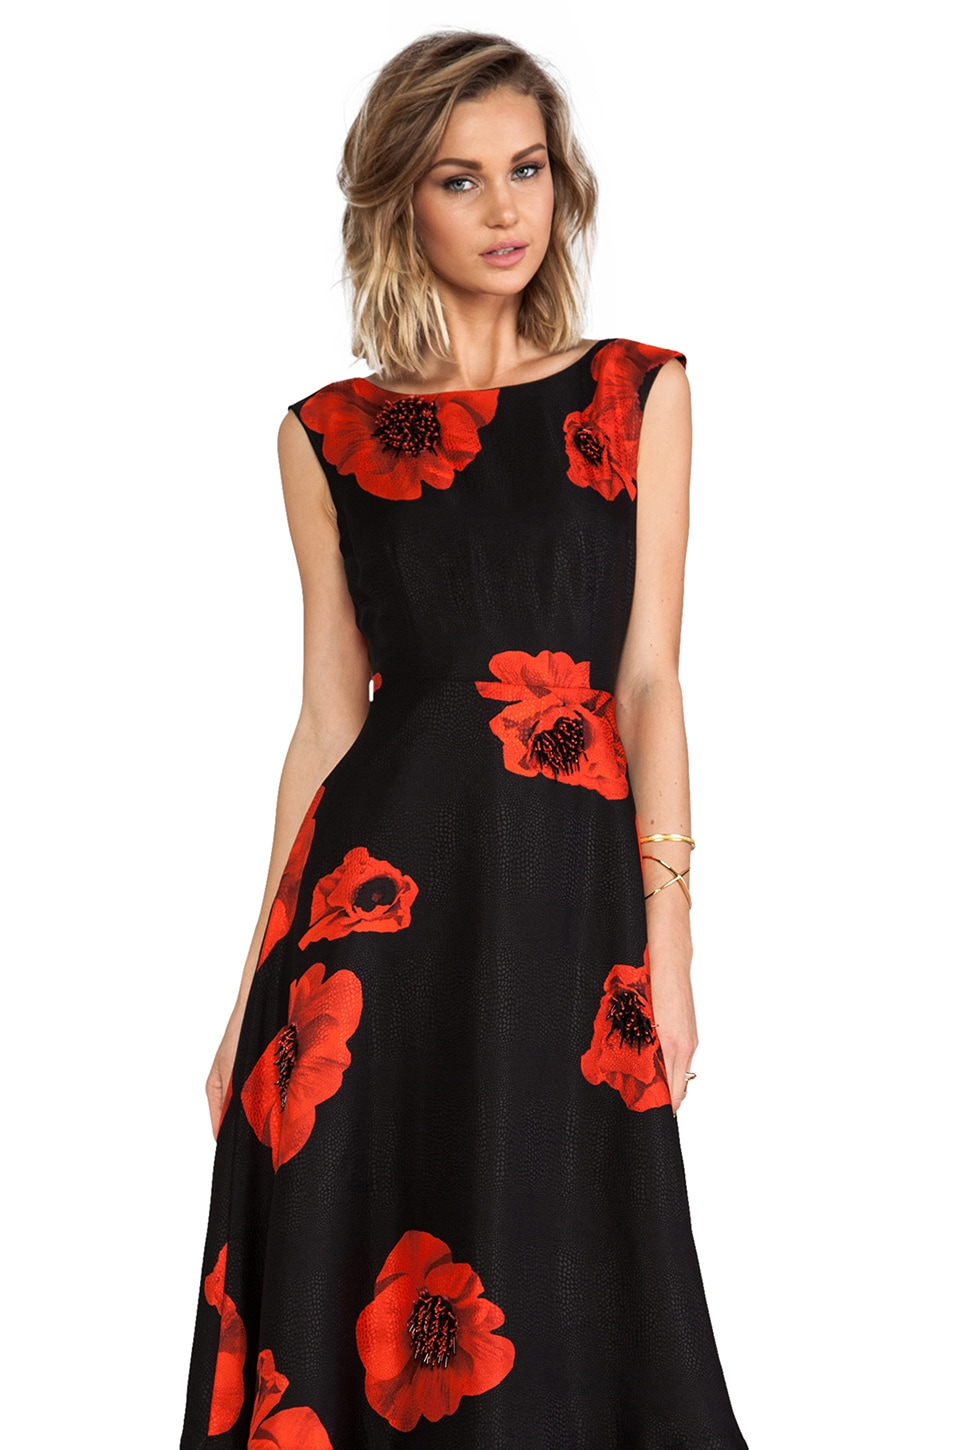 Tracy Reese Scarlet Floral Embellished Flared Frock in Black/Scarlet